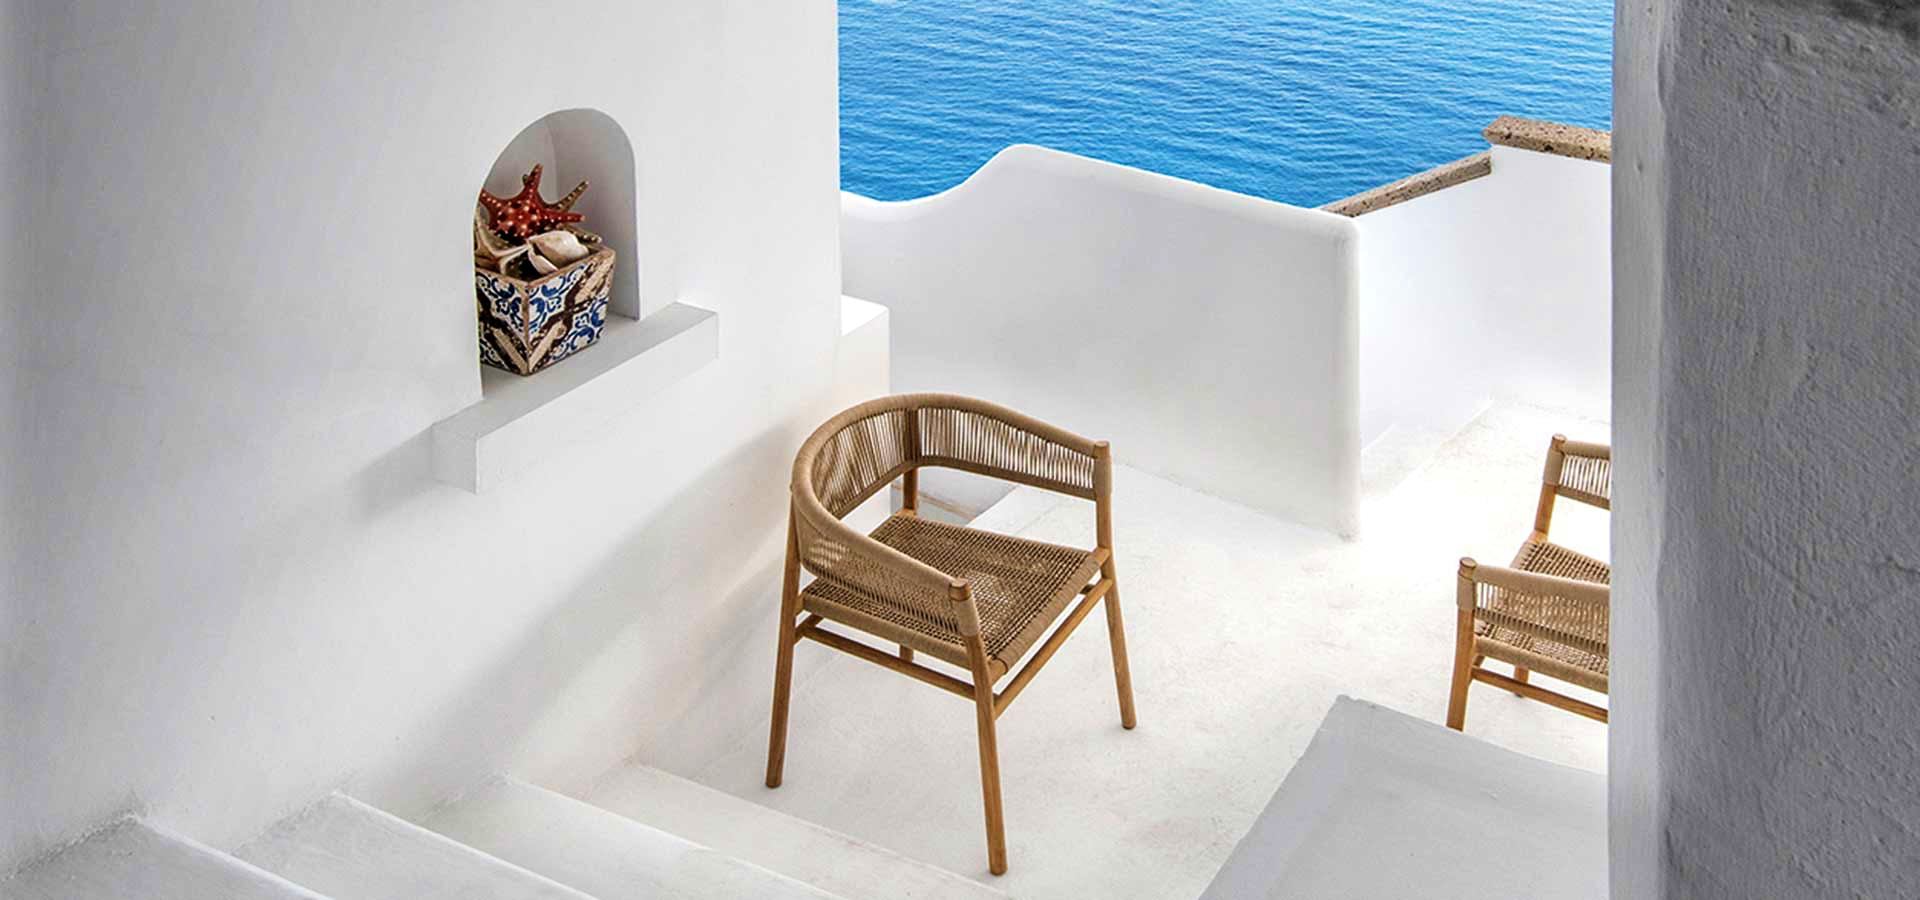 Image of Kilt view1 2 in Outdoors spaces that break design boundaries with indoors - Cosentino